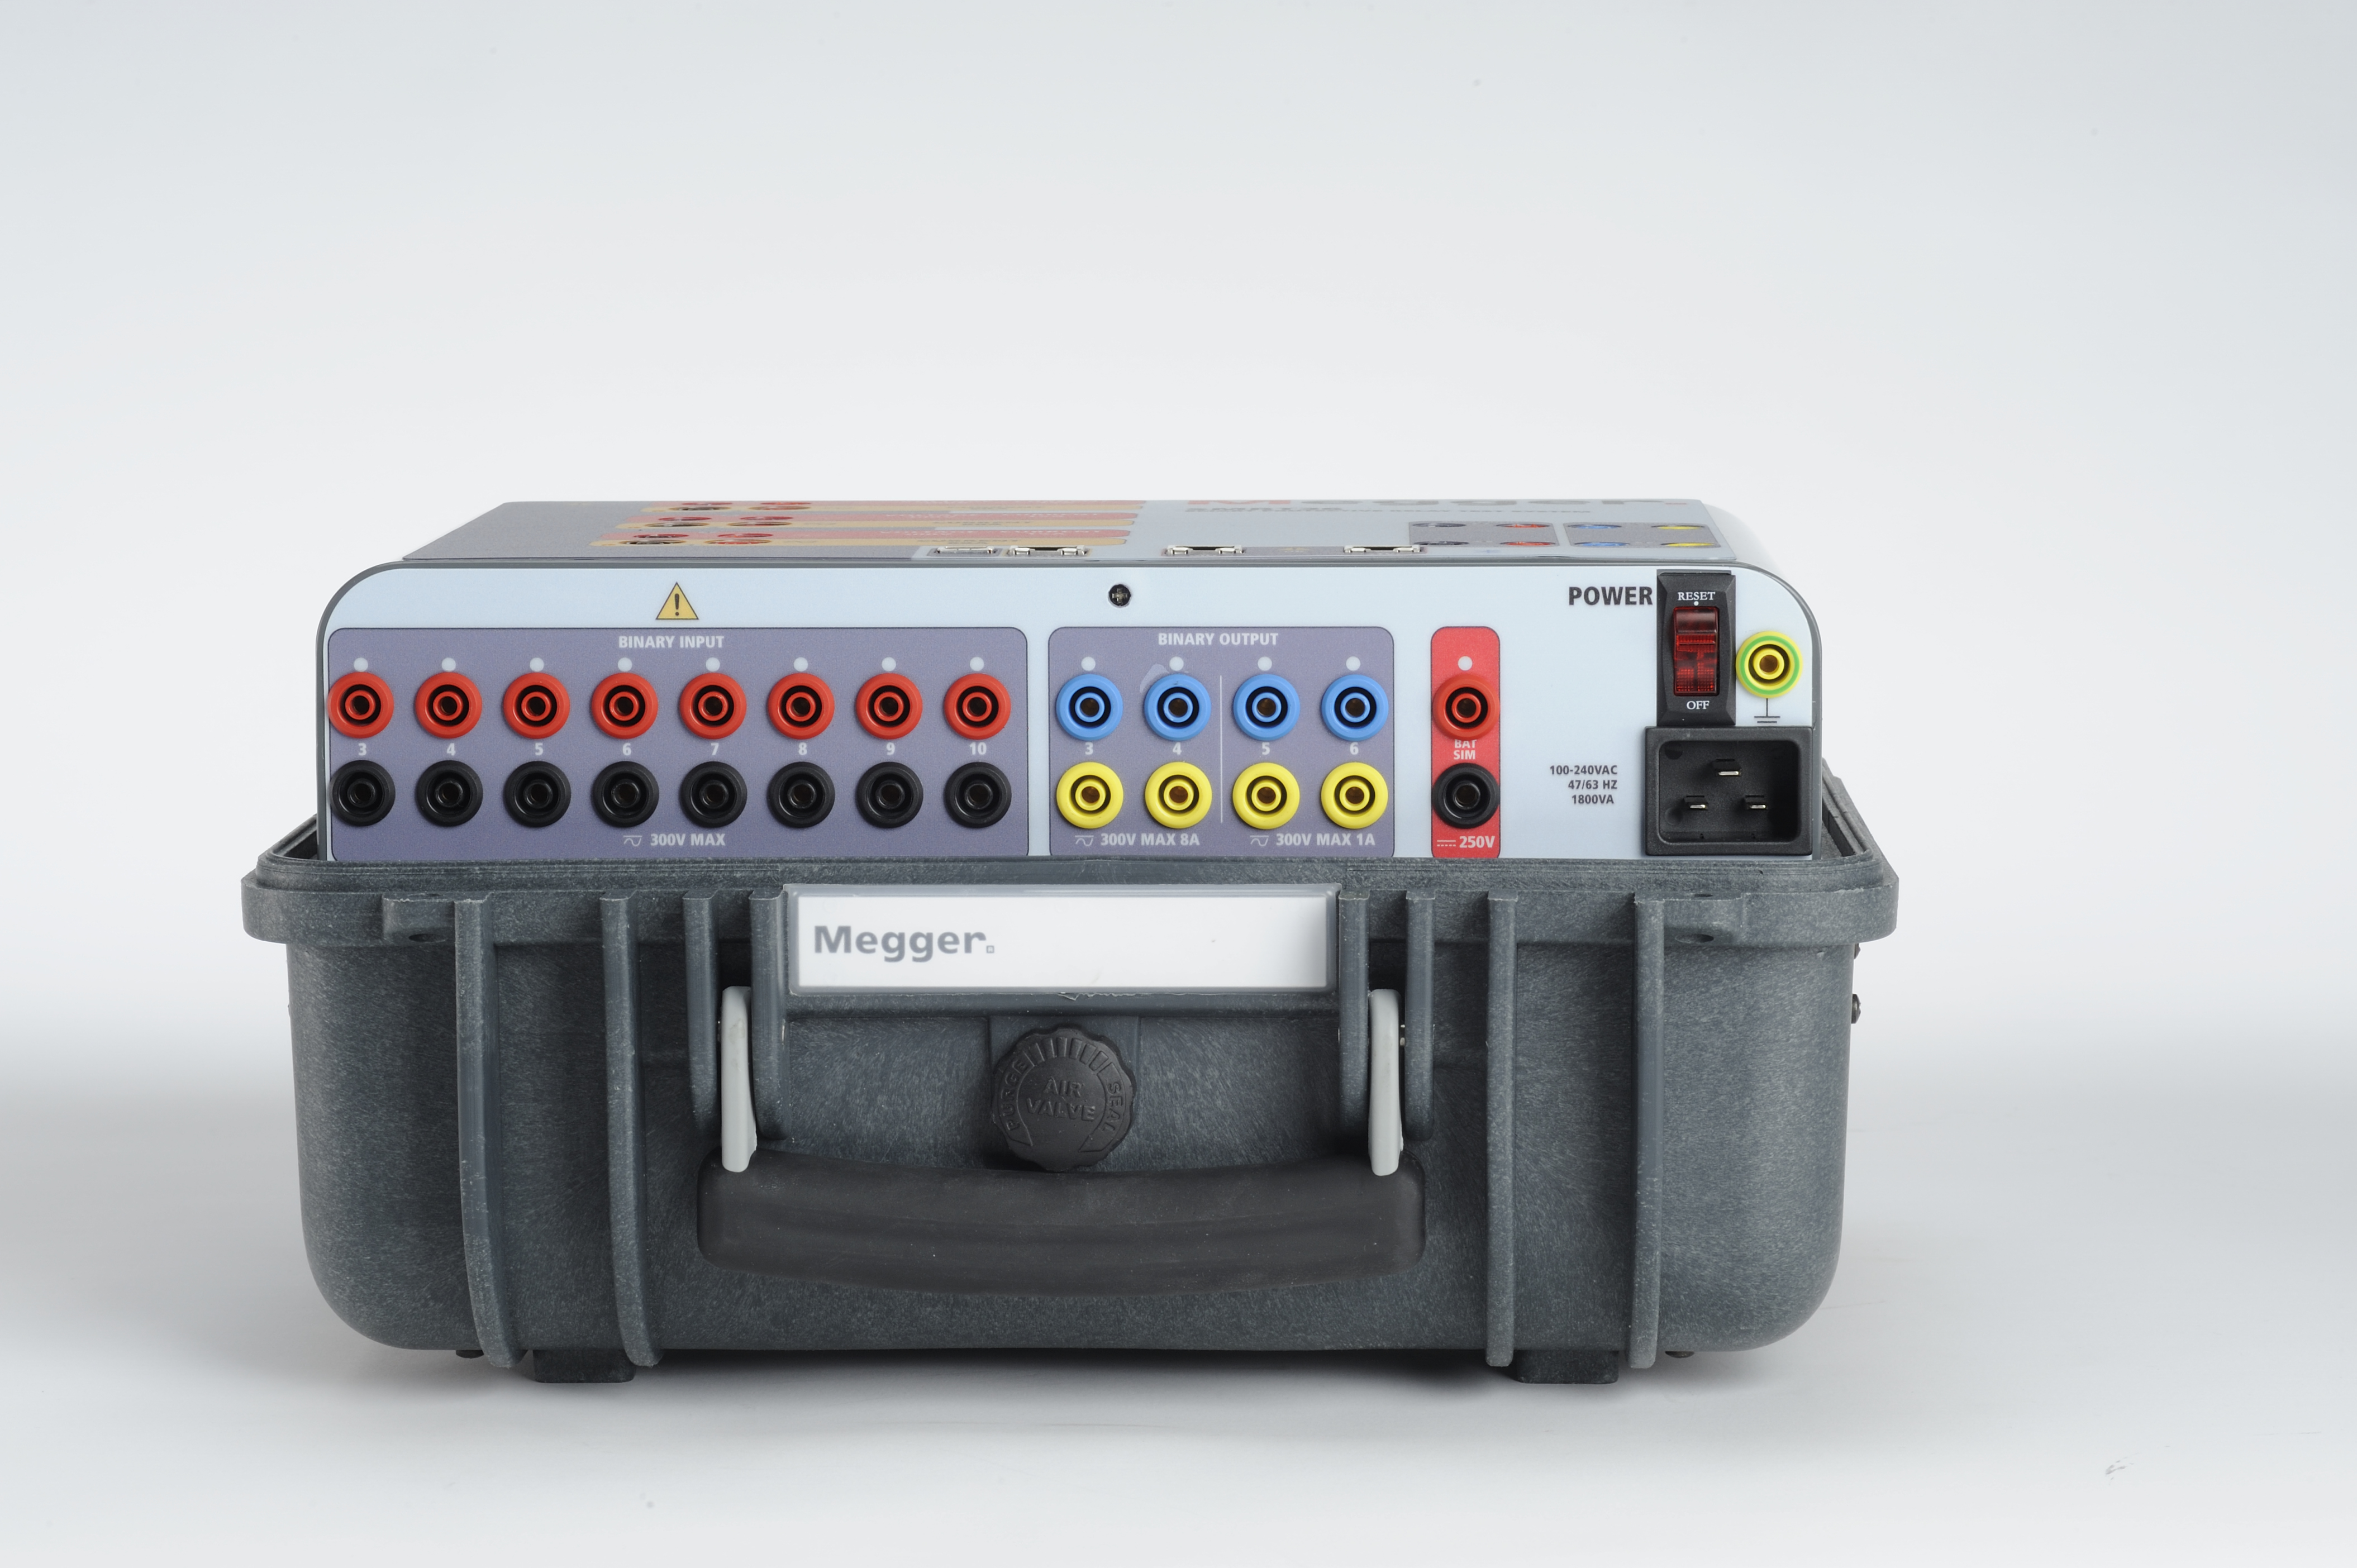 Megger's New SMRT 36 – The Smart Solution For Protective Relay ...